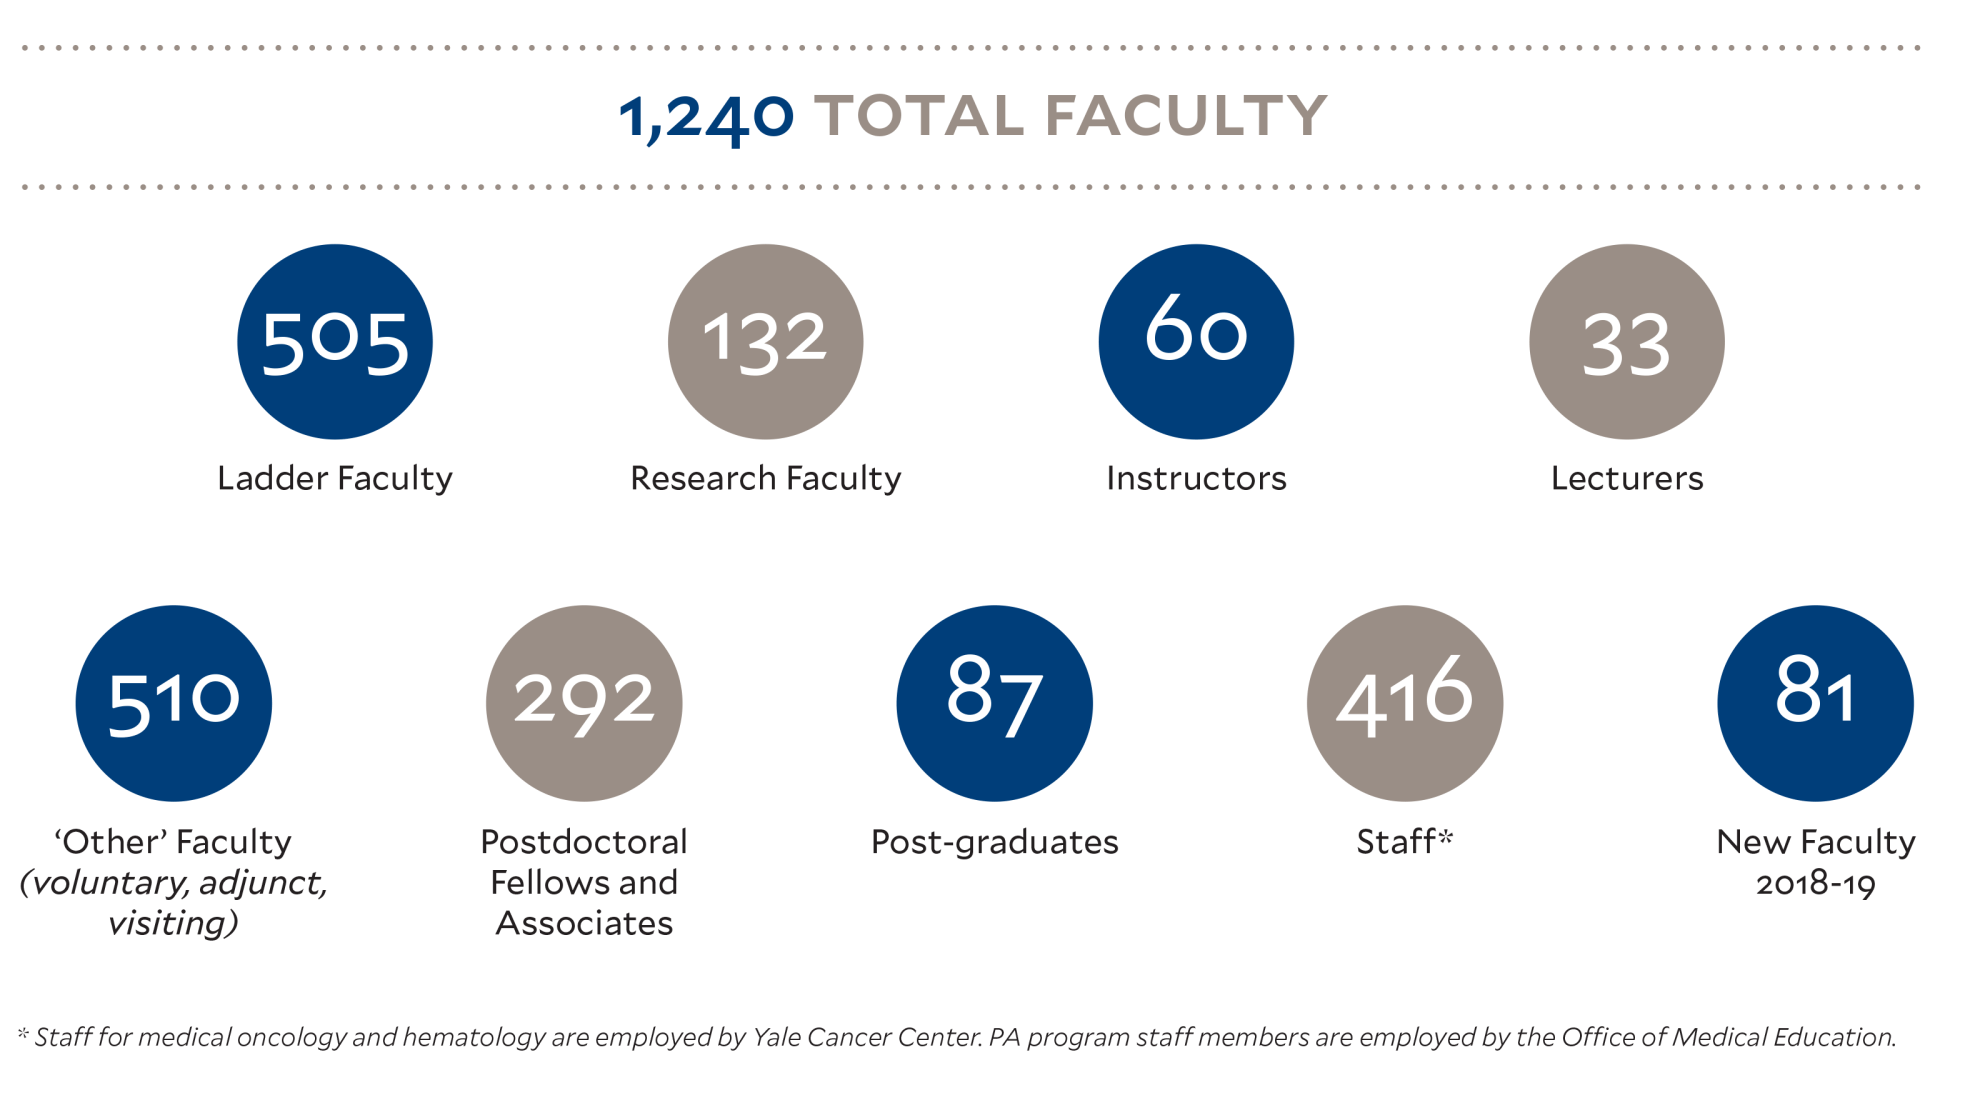 1240 Total Faculty: 505 ladder track faculty, 132 research faculty, 60 instructors, 33 lecturers, 510 other faculty (voluntary, adjunct, visiting), 292 postdoctoral fellows & associates, 87 post-graduates, 416 staff, 81 new faculty for 2018 - 2019 academic year